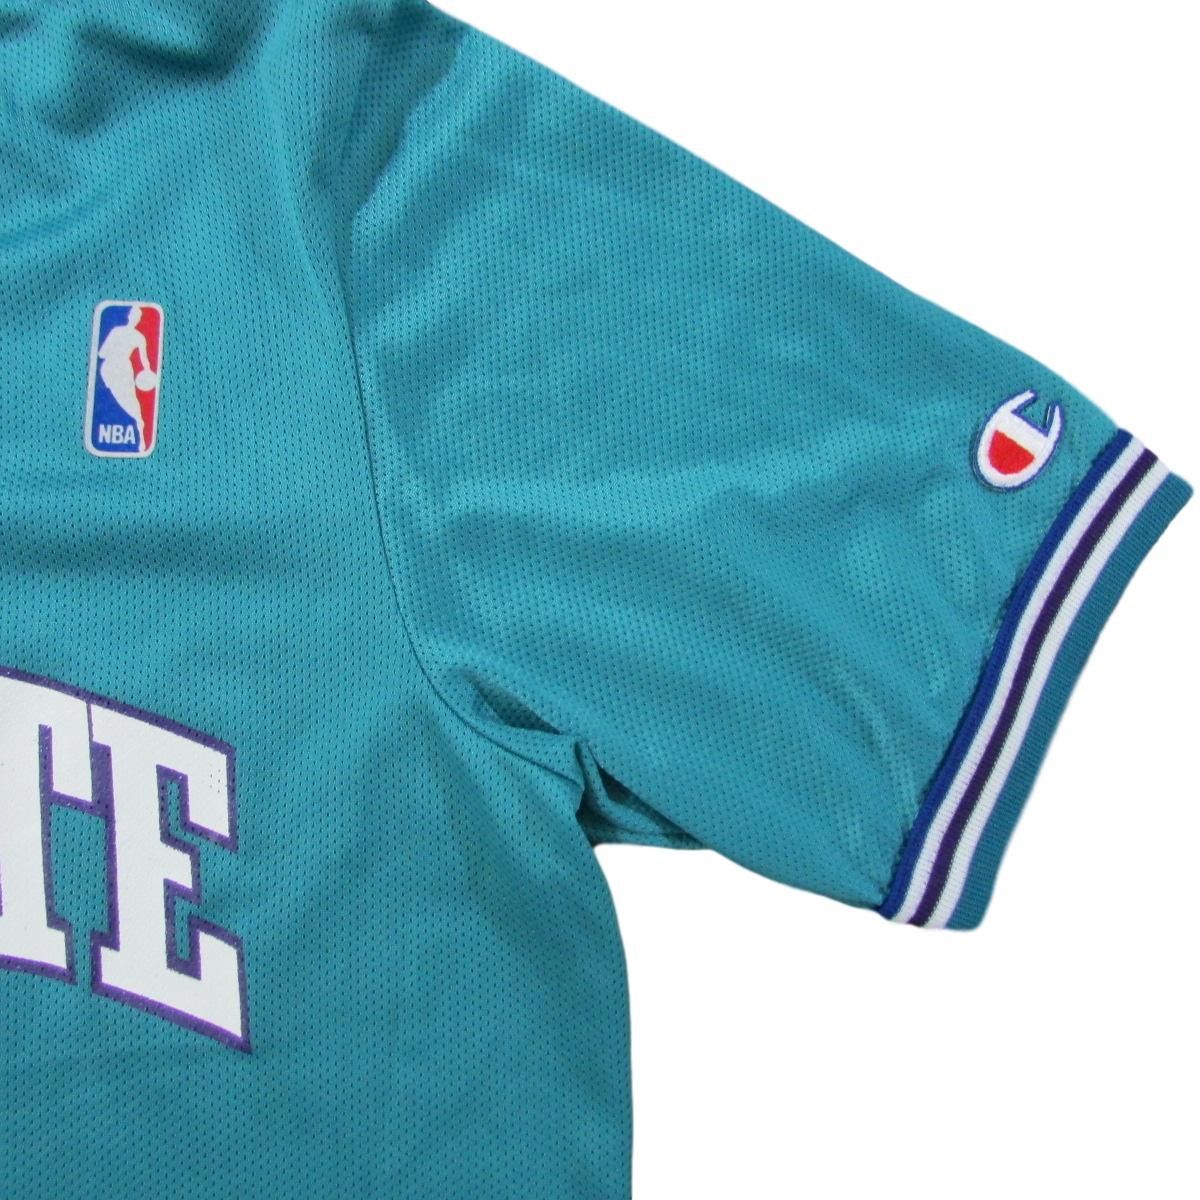 Charlotte Hornets Warm-Up Practice Basketball Jersey Shirt Champion Sz M